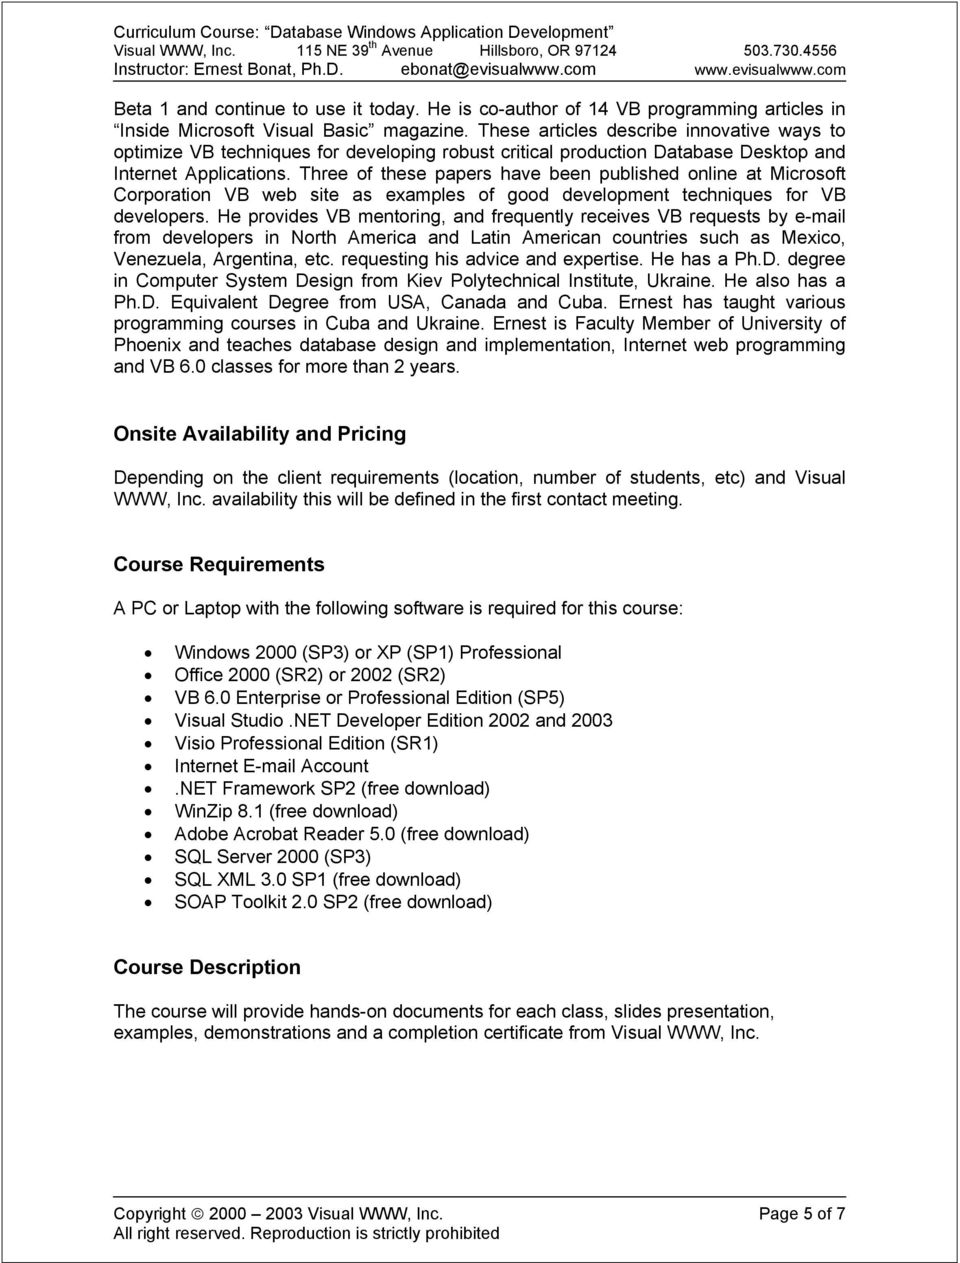 Three of these papers have been published online at Microsoft Corporation VB web site as examples of good development techniques for VB developers.